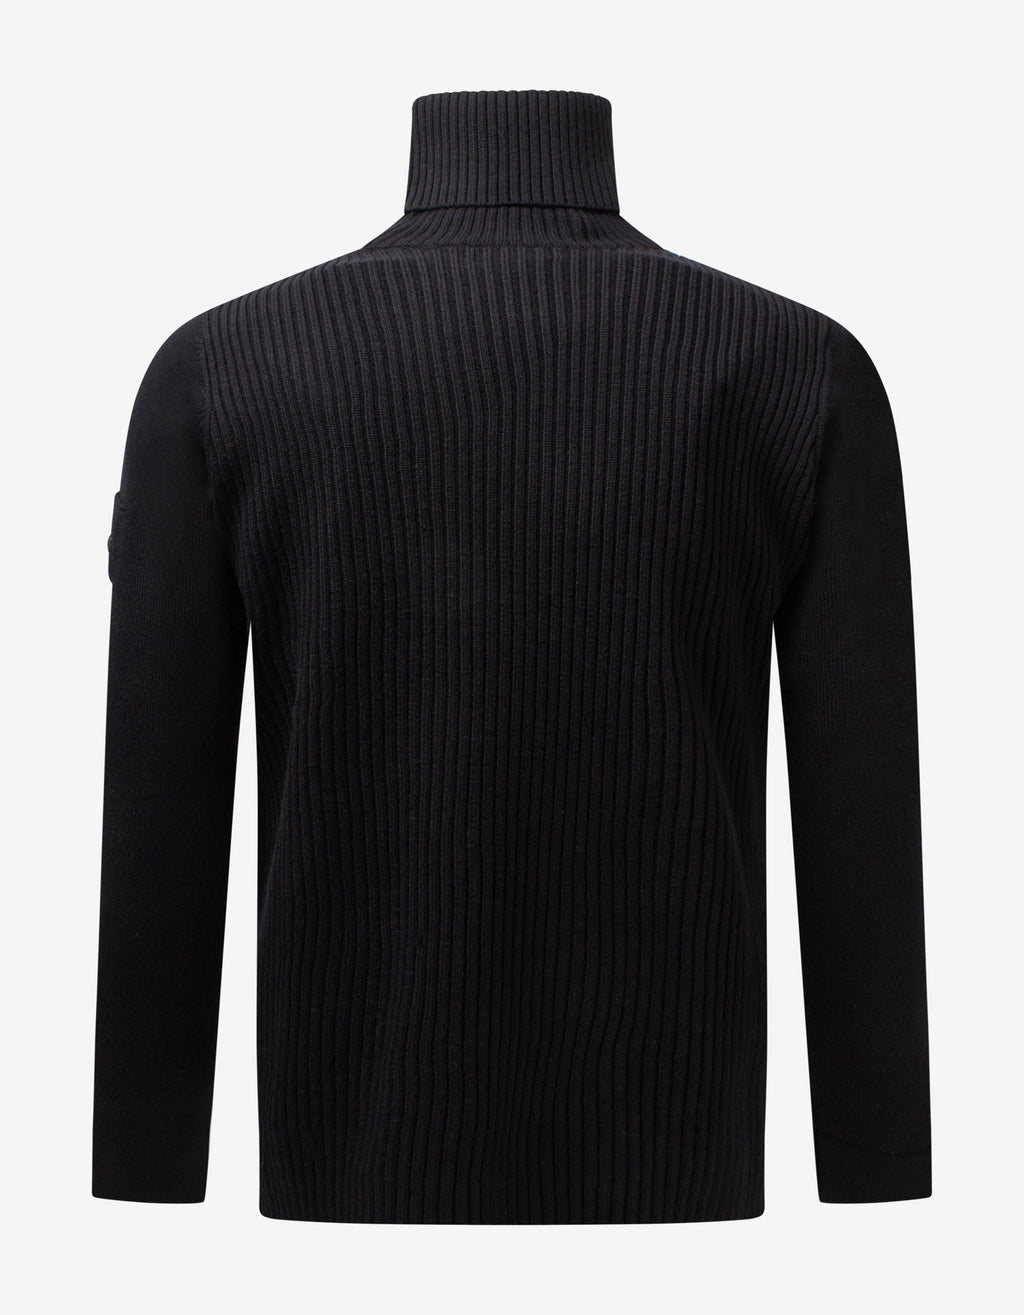 Black Ribbed Turtleneck Sweater